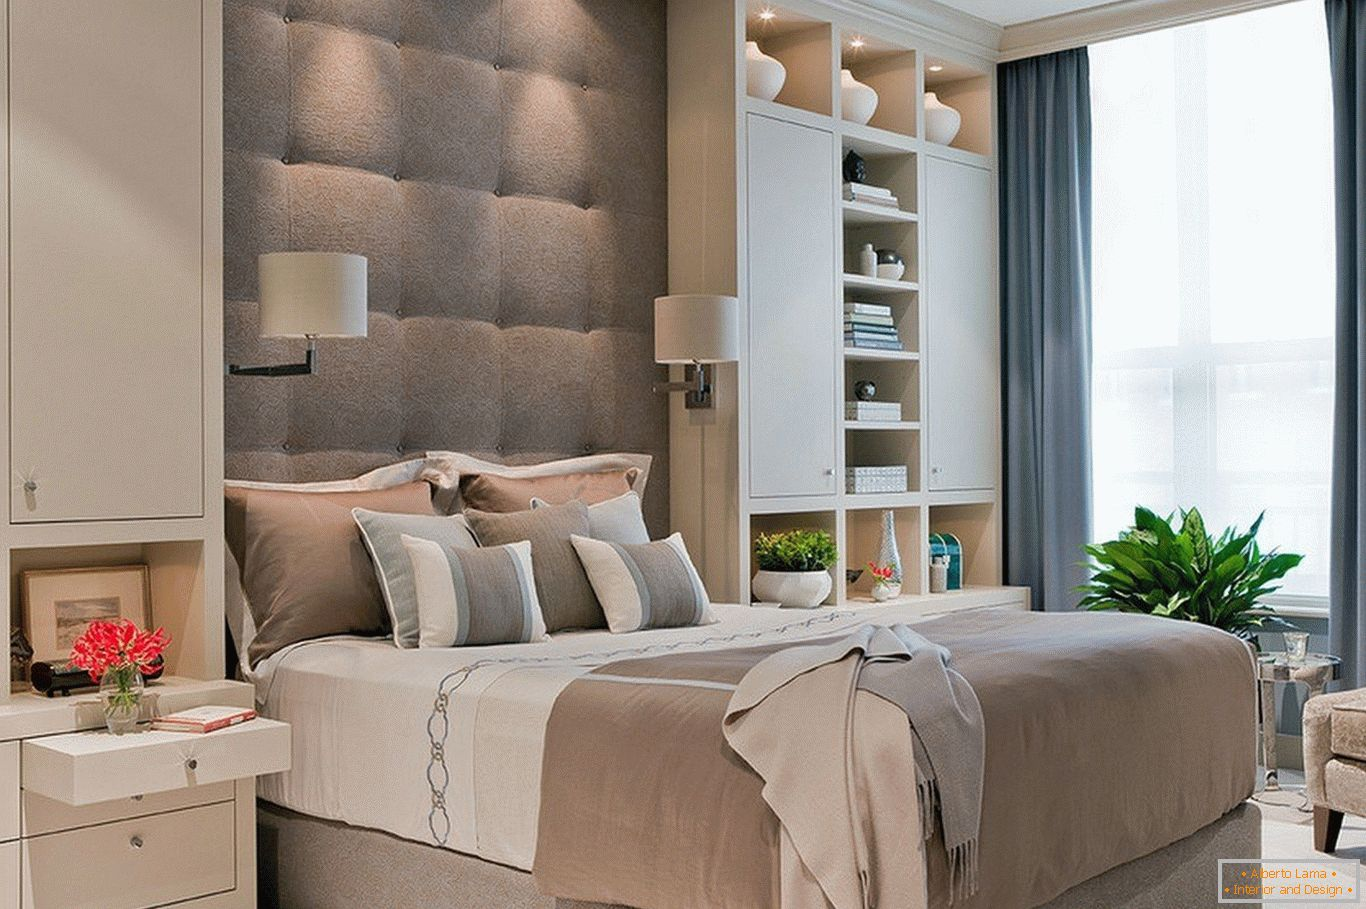 High bed with a soft headboard